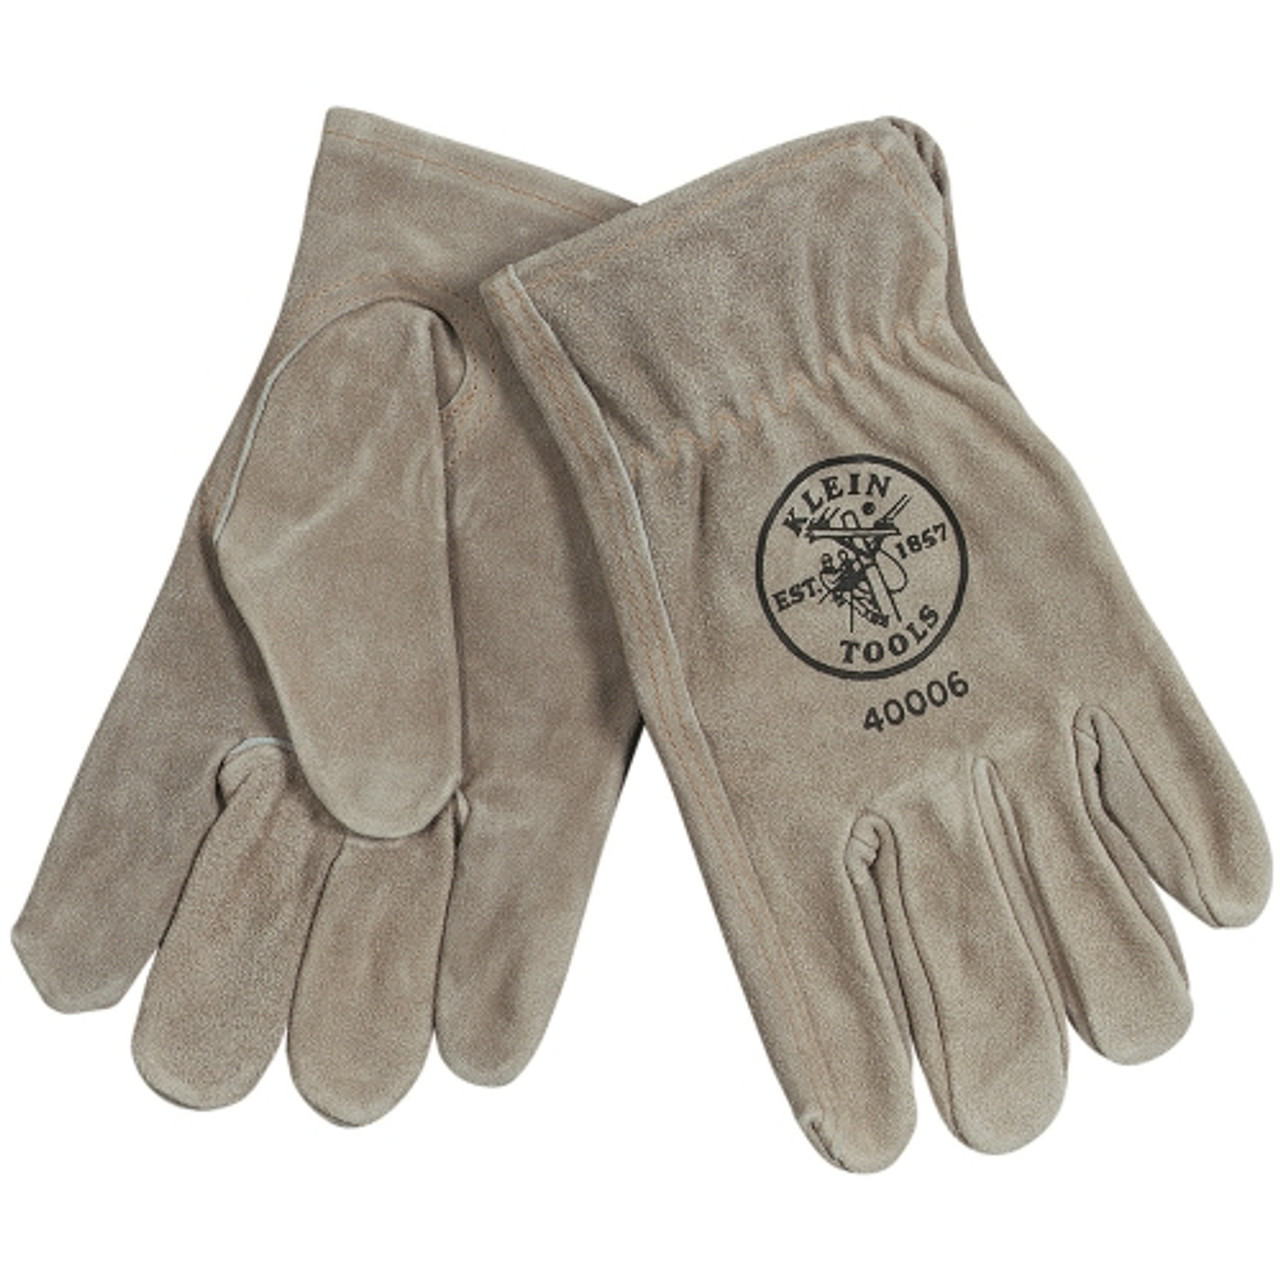 Klein 40006 Cowhide Drivers Gloves Large